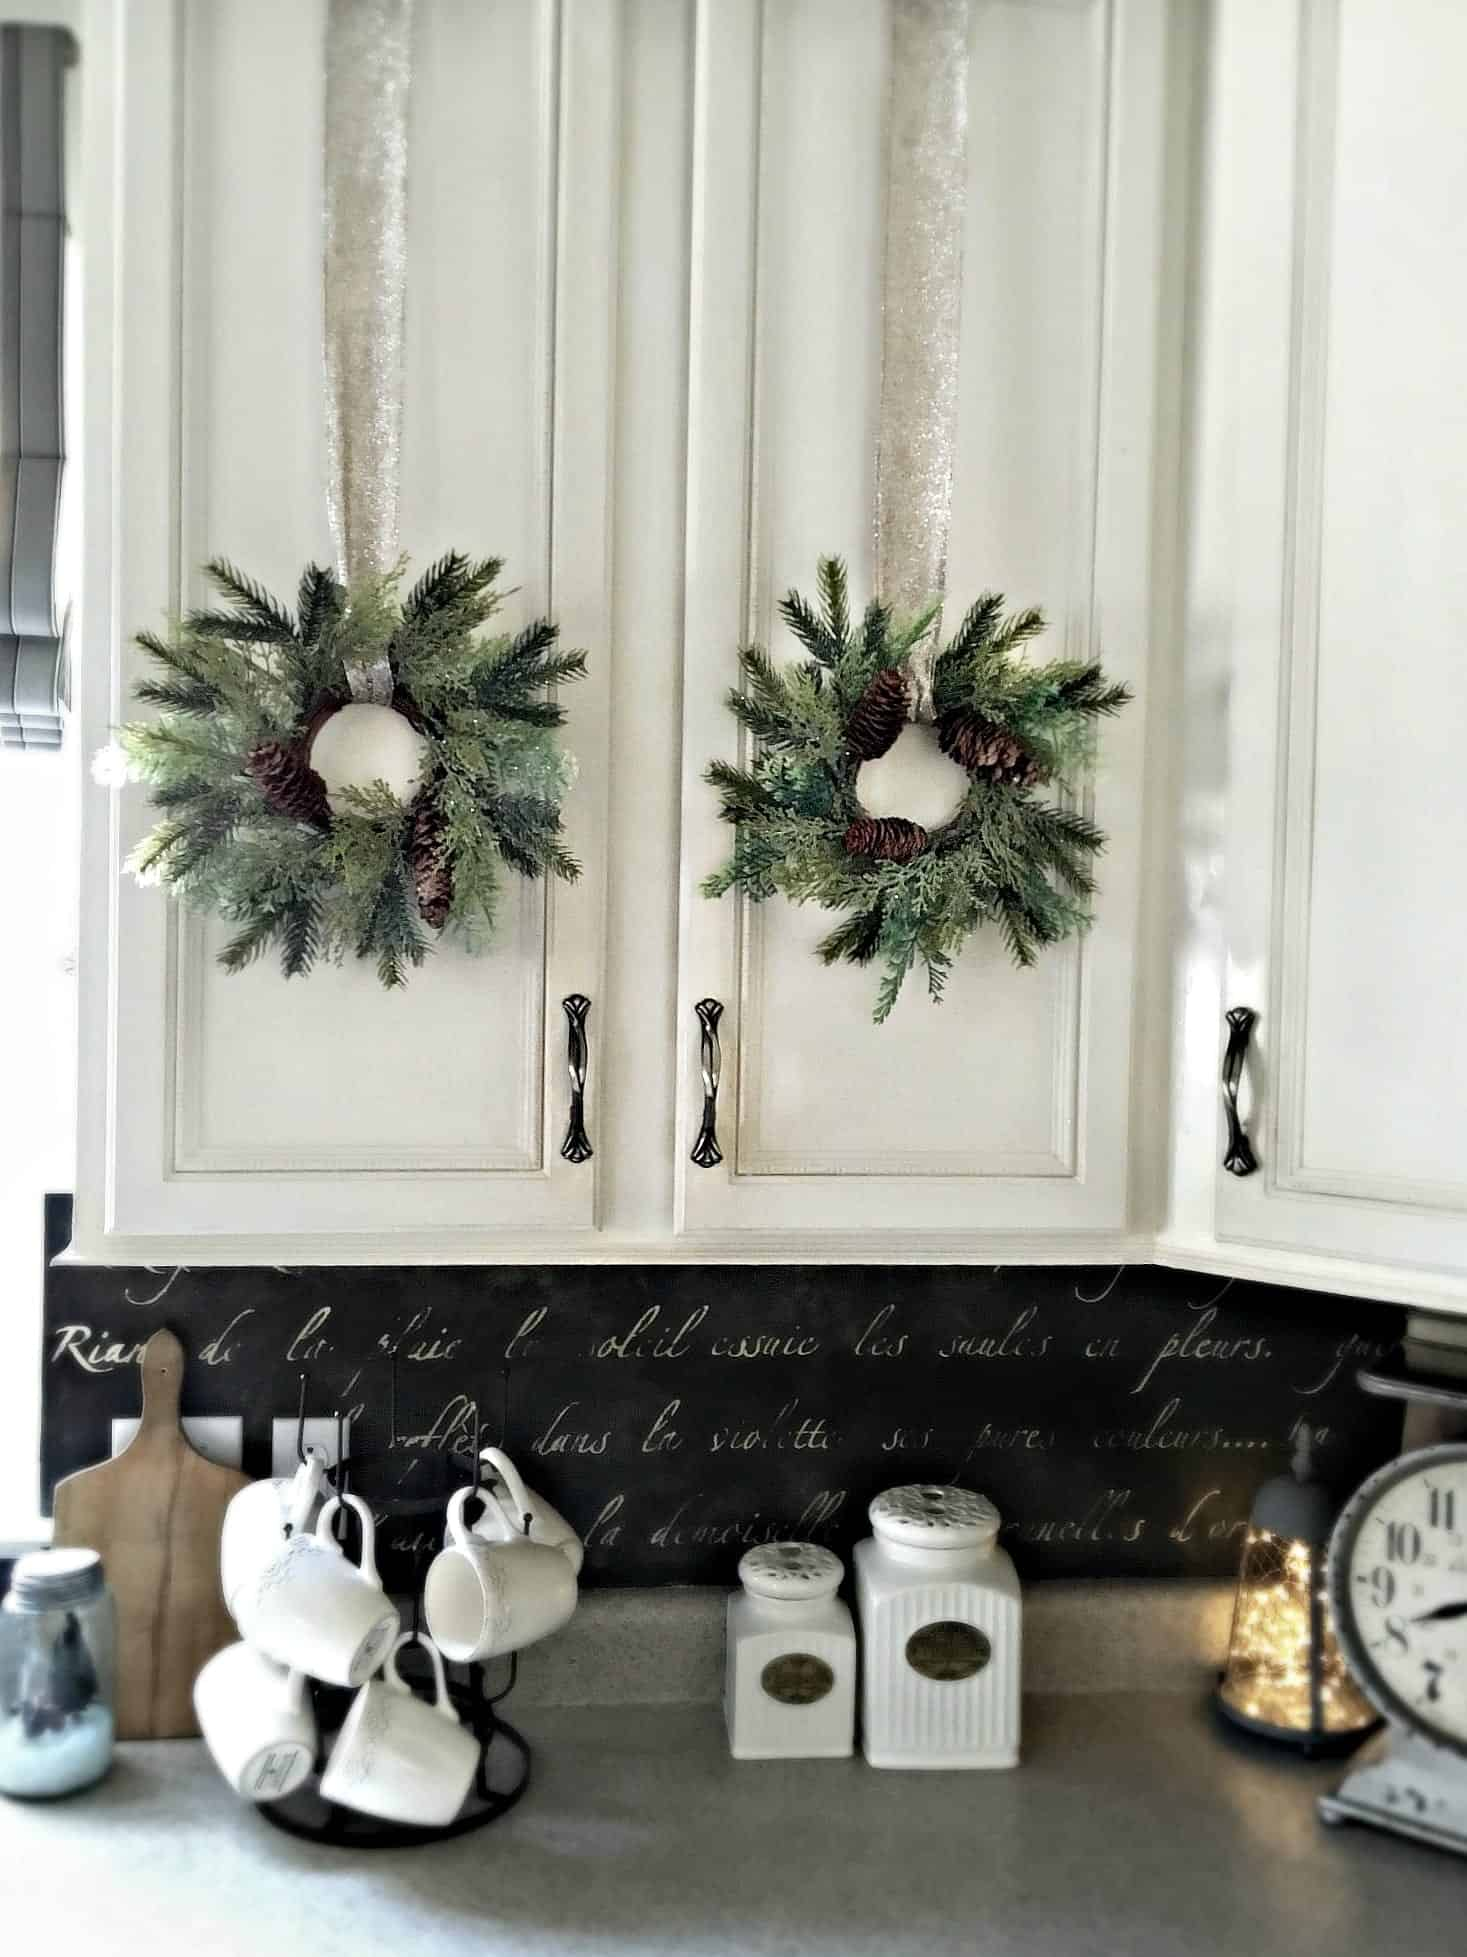 Diy stenciled french backsplash kitchen wreaths holiday home tour 2015 by snazzylittlethings dailygadgetfo Choice Image